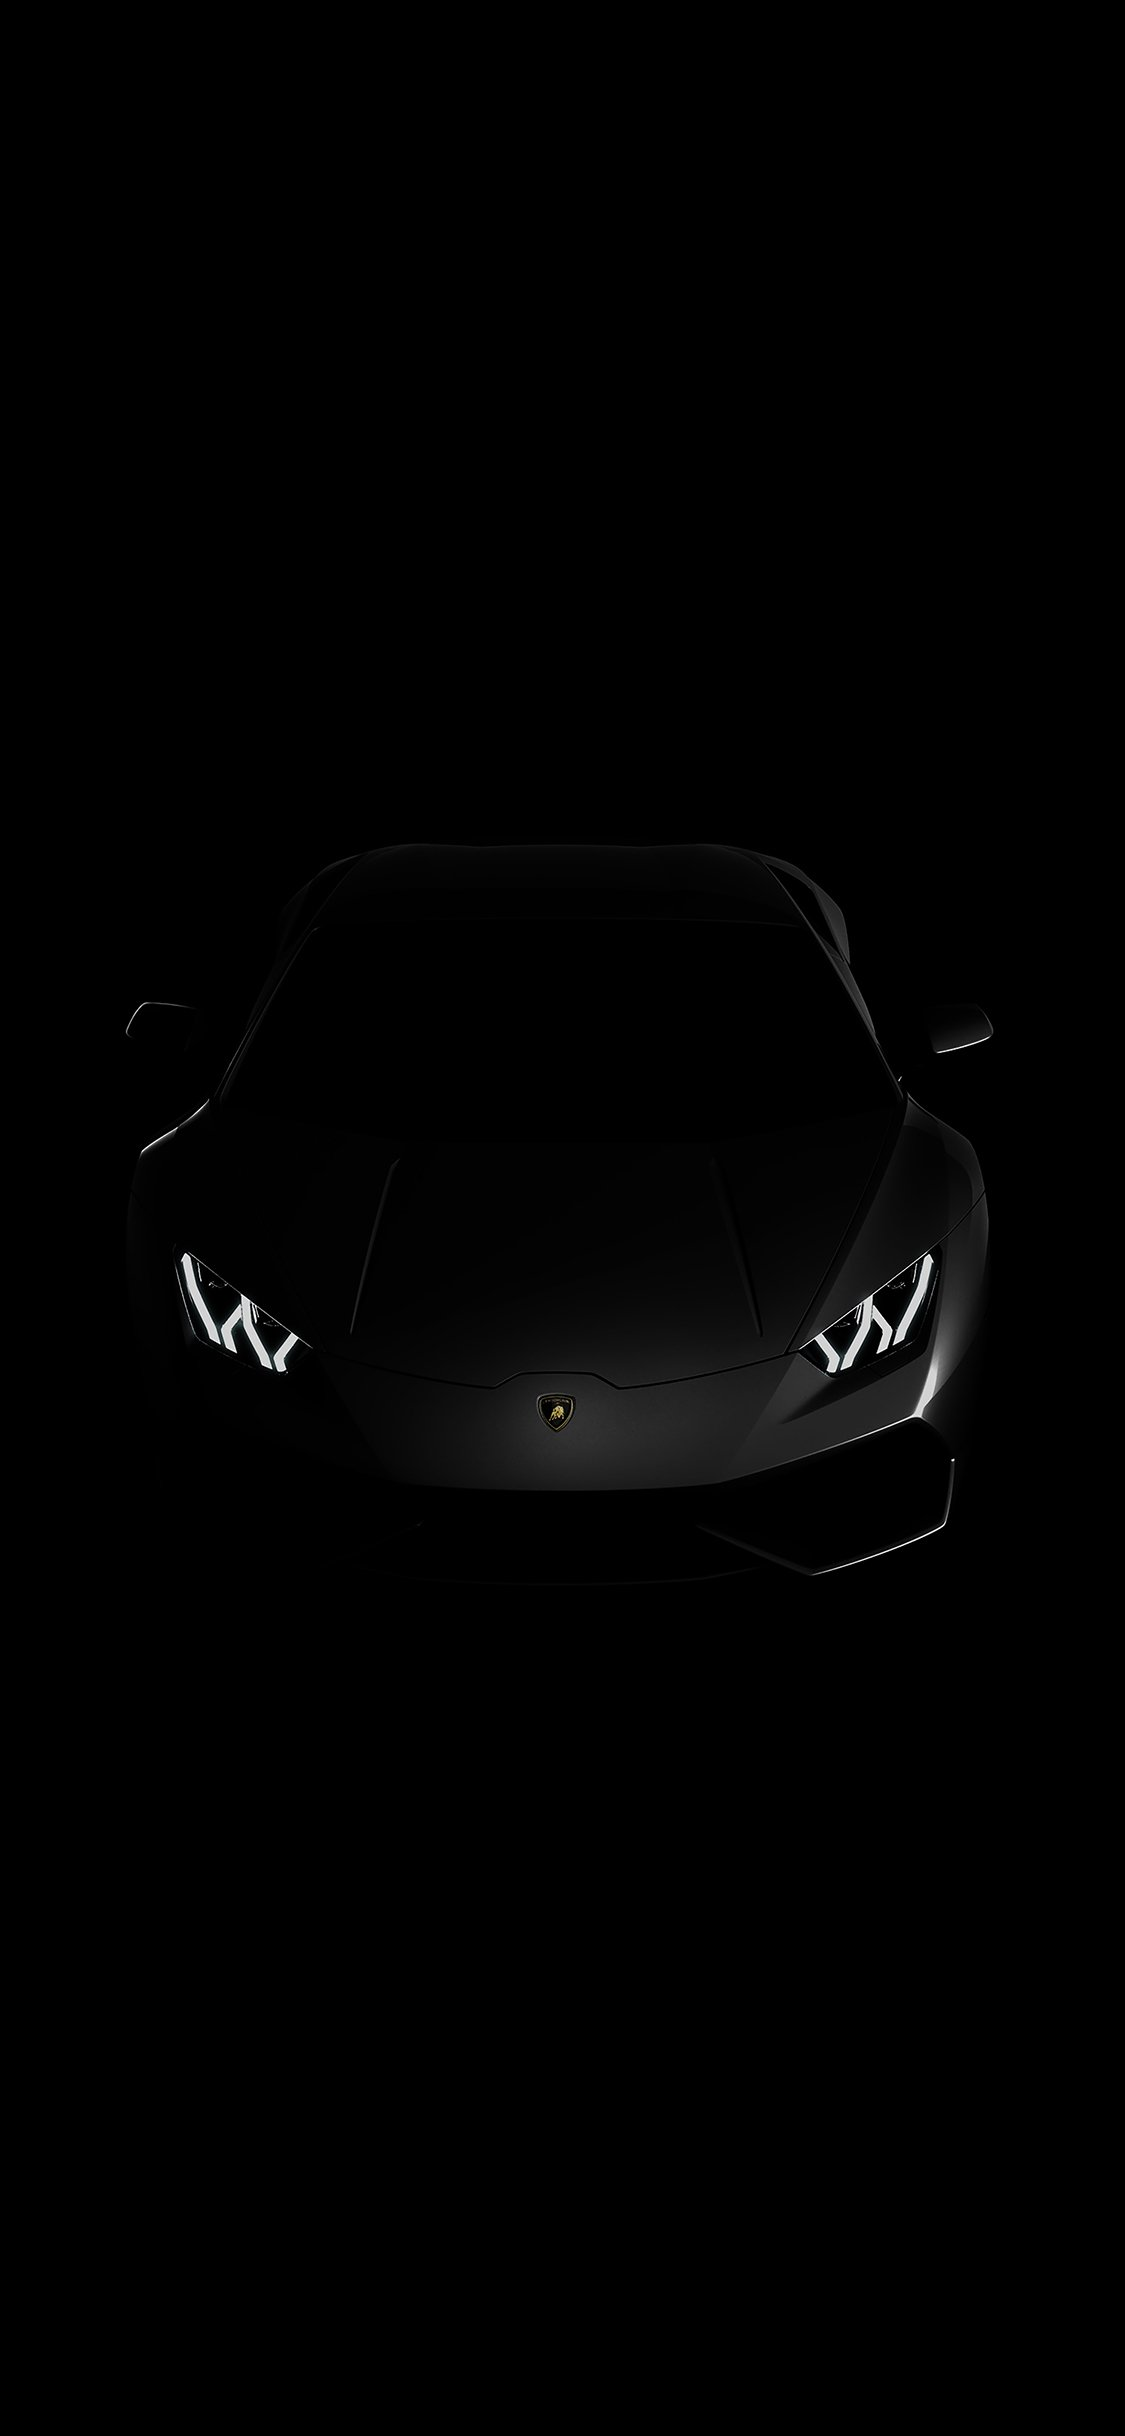 Lamborghini dark iPhone wallpaper